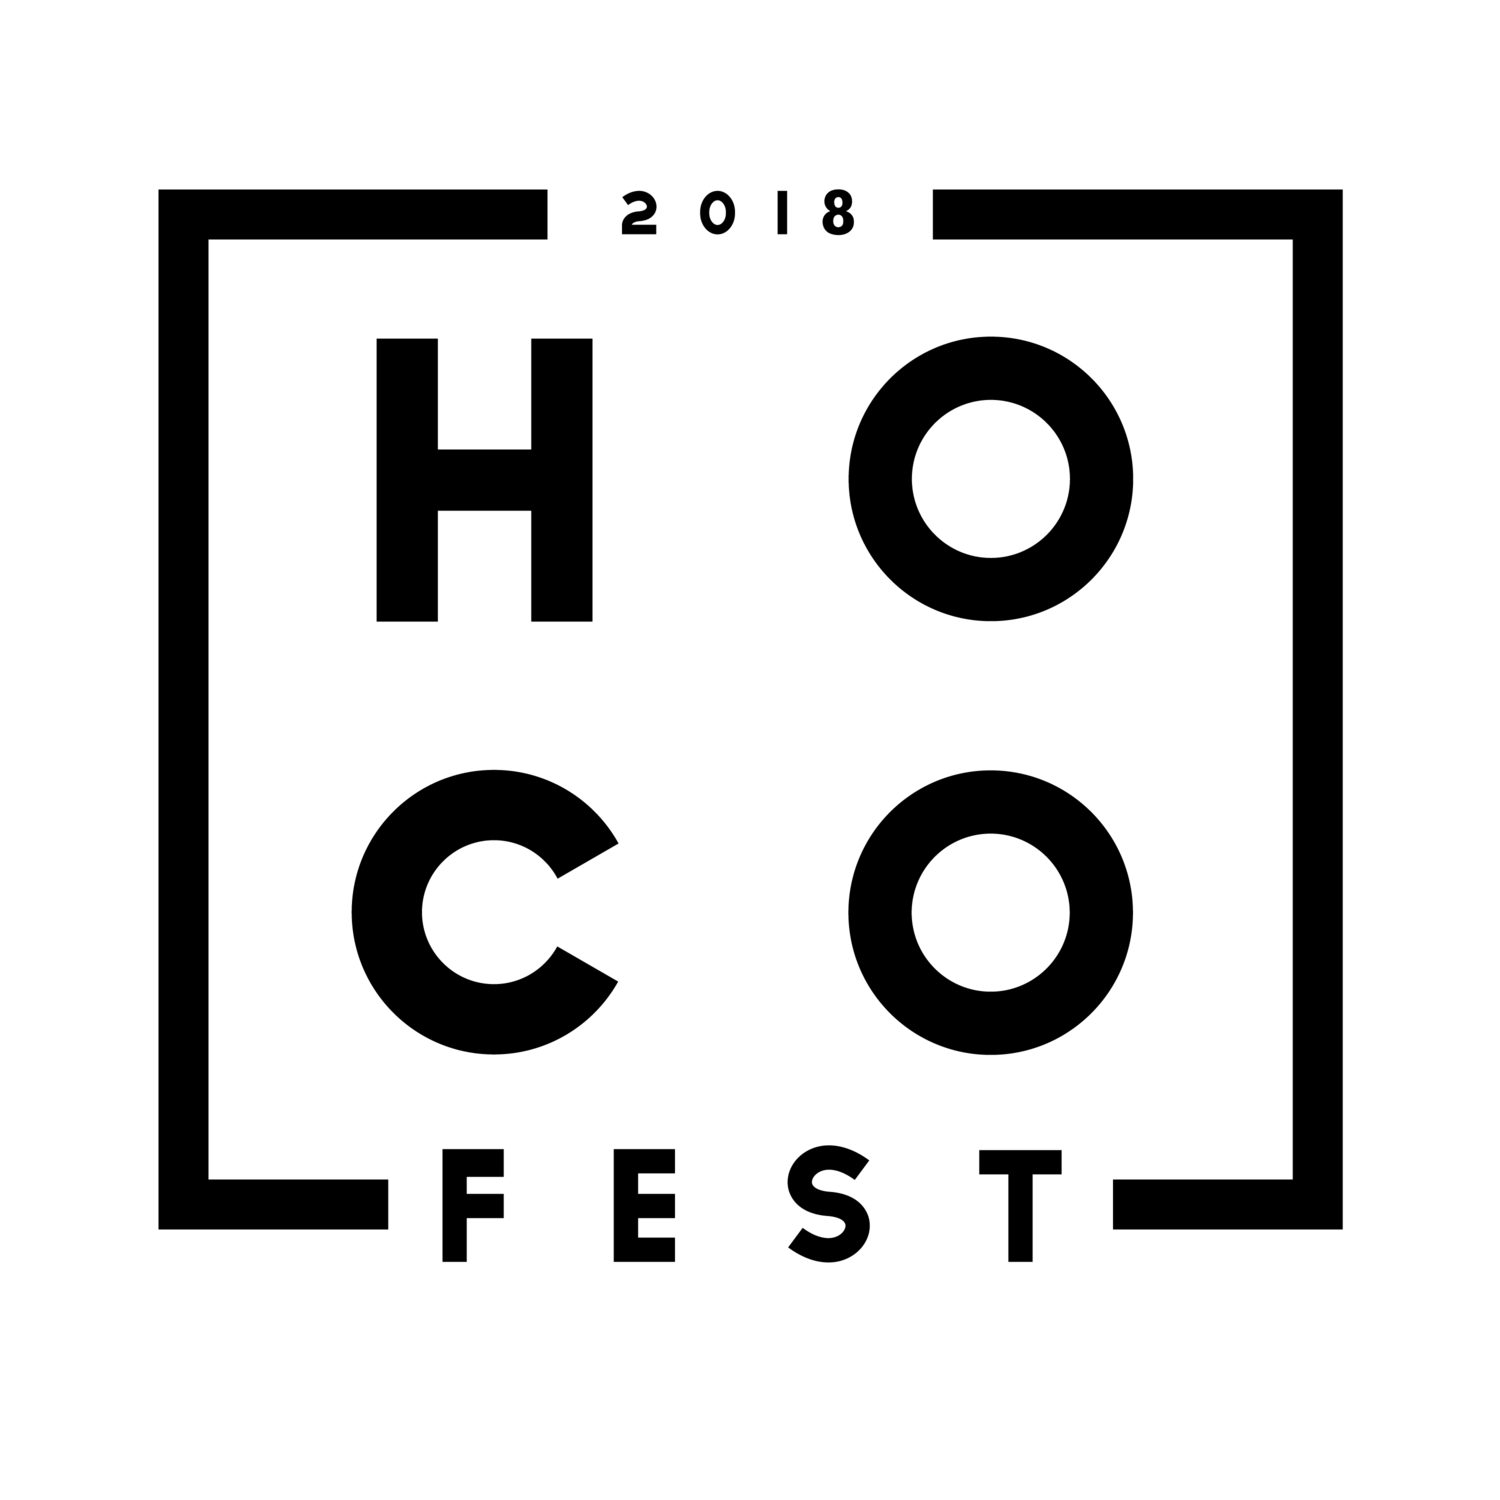 HOCO Fest | Aug 29-Sep 2 | Tucson, AZ